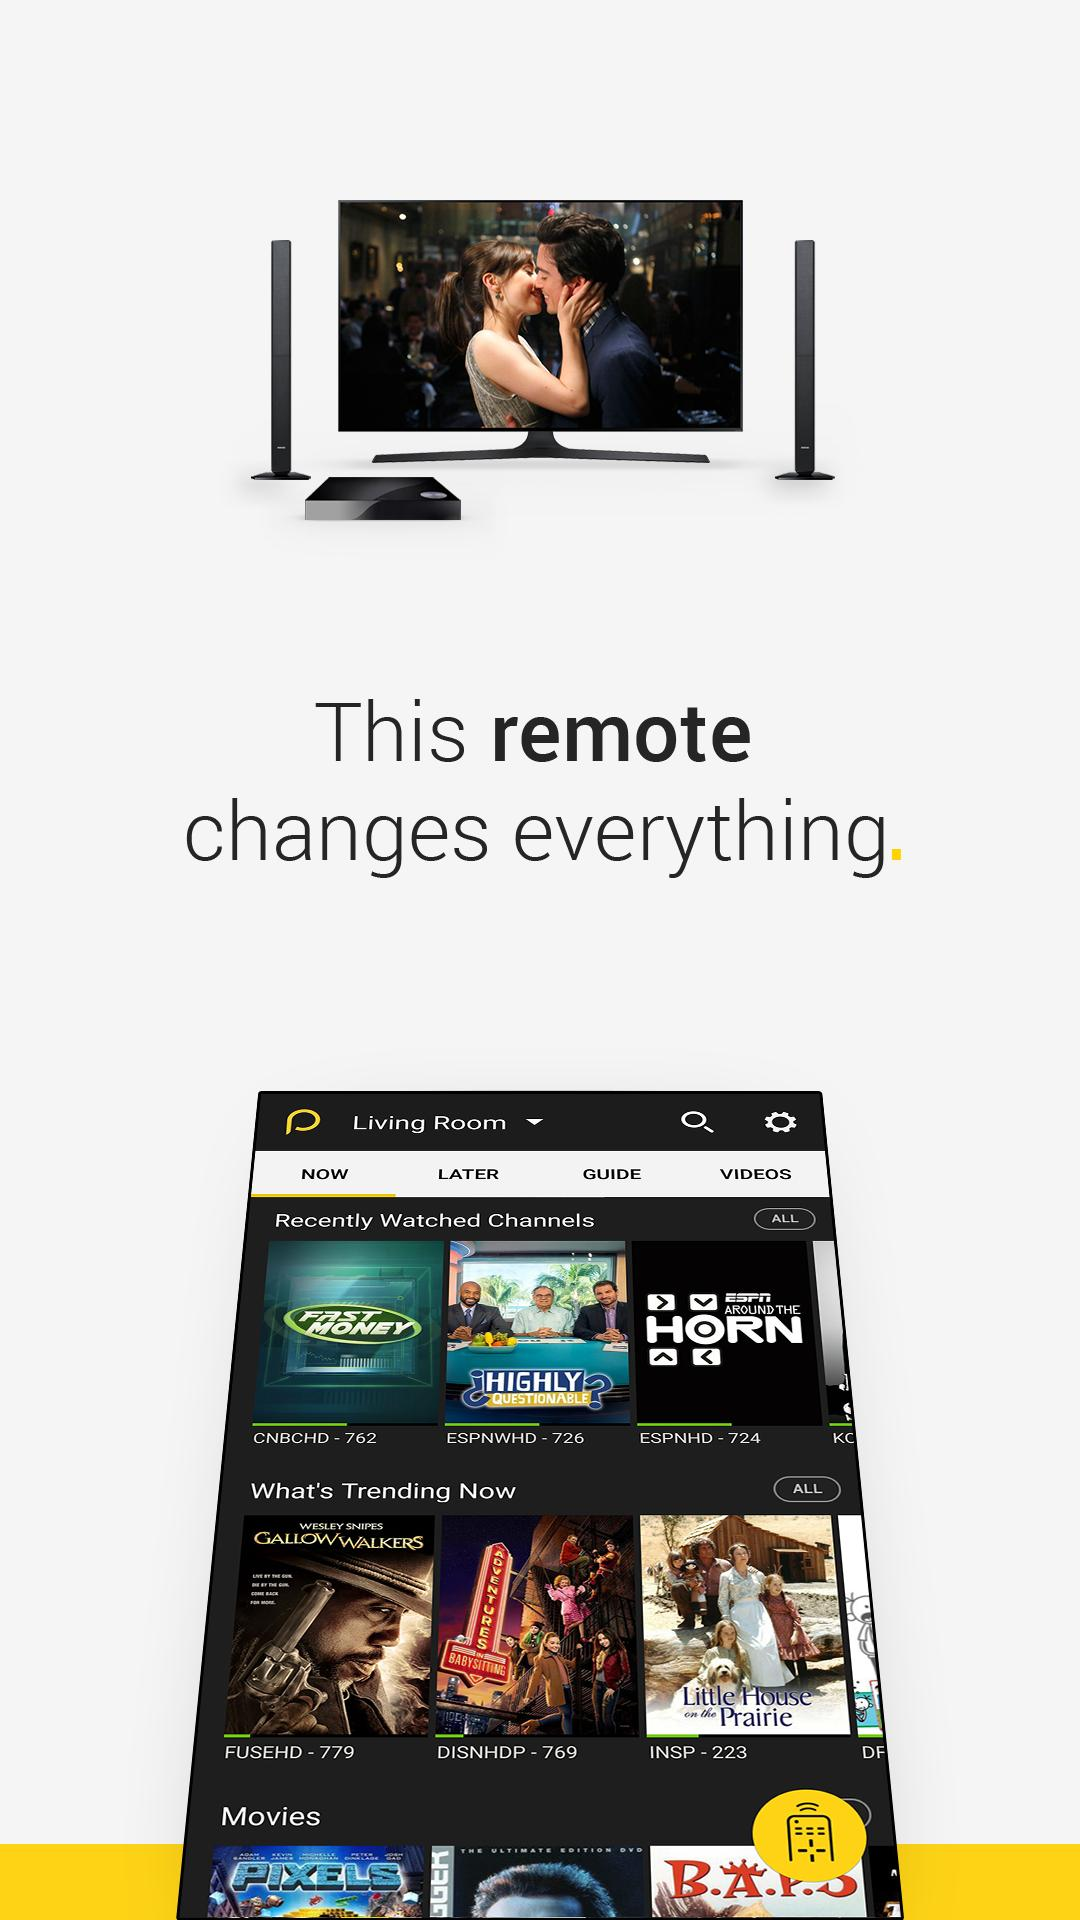 Peel Smart Remote TV Guide for Android - APK Download